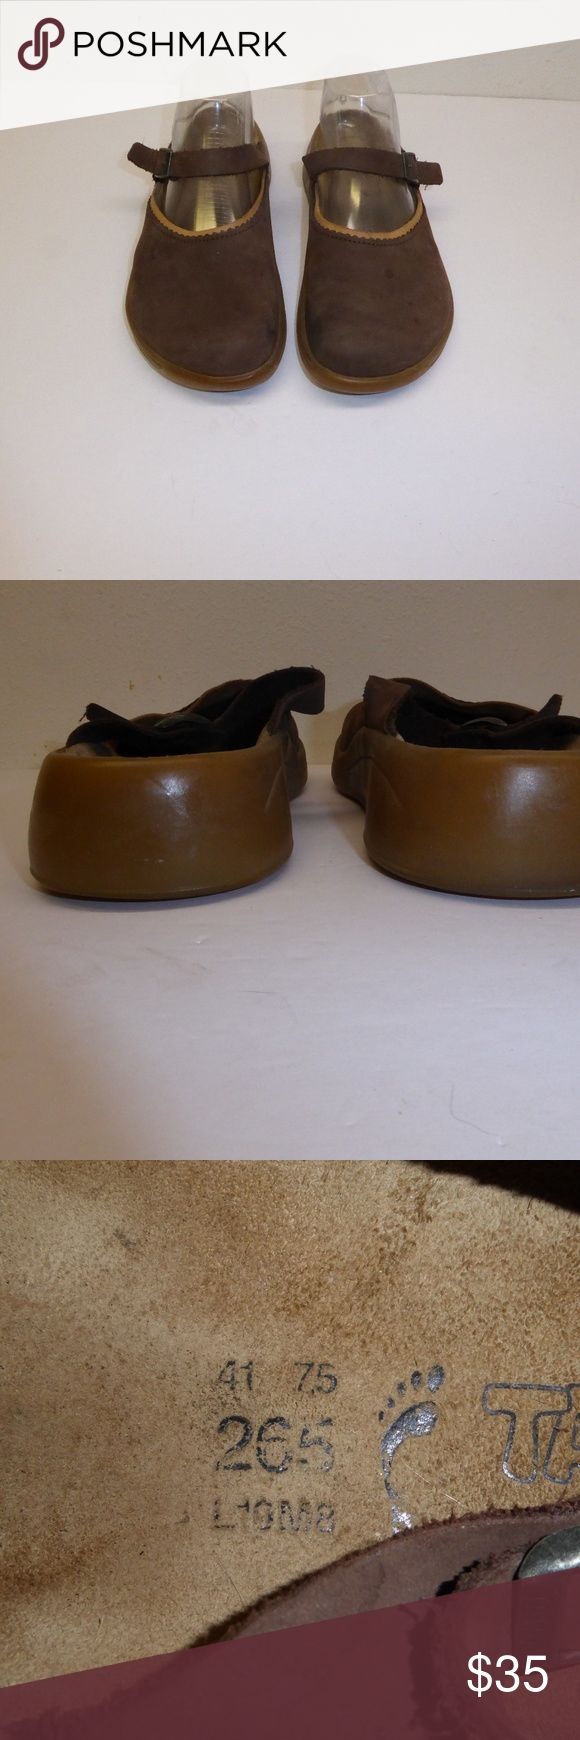 Tatami Birkenstock Slip-ons Size 10 #060 Dark brown Tatami Birkenstock slip-on shoes, size 41.  Leather uppers, rubber soles.  Some minor spots on uppers (see photos), but otherwise these pre-owned shoes are in excellent condition.  09/17 Birkenstock Shoes Flats & Loafers